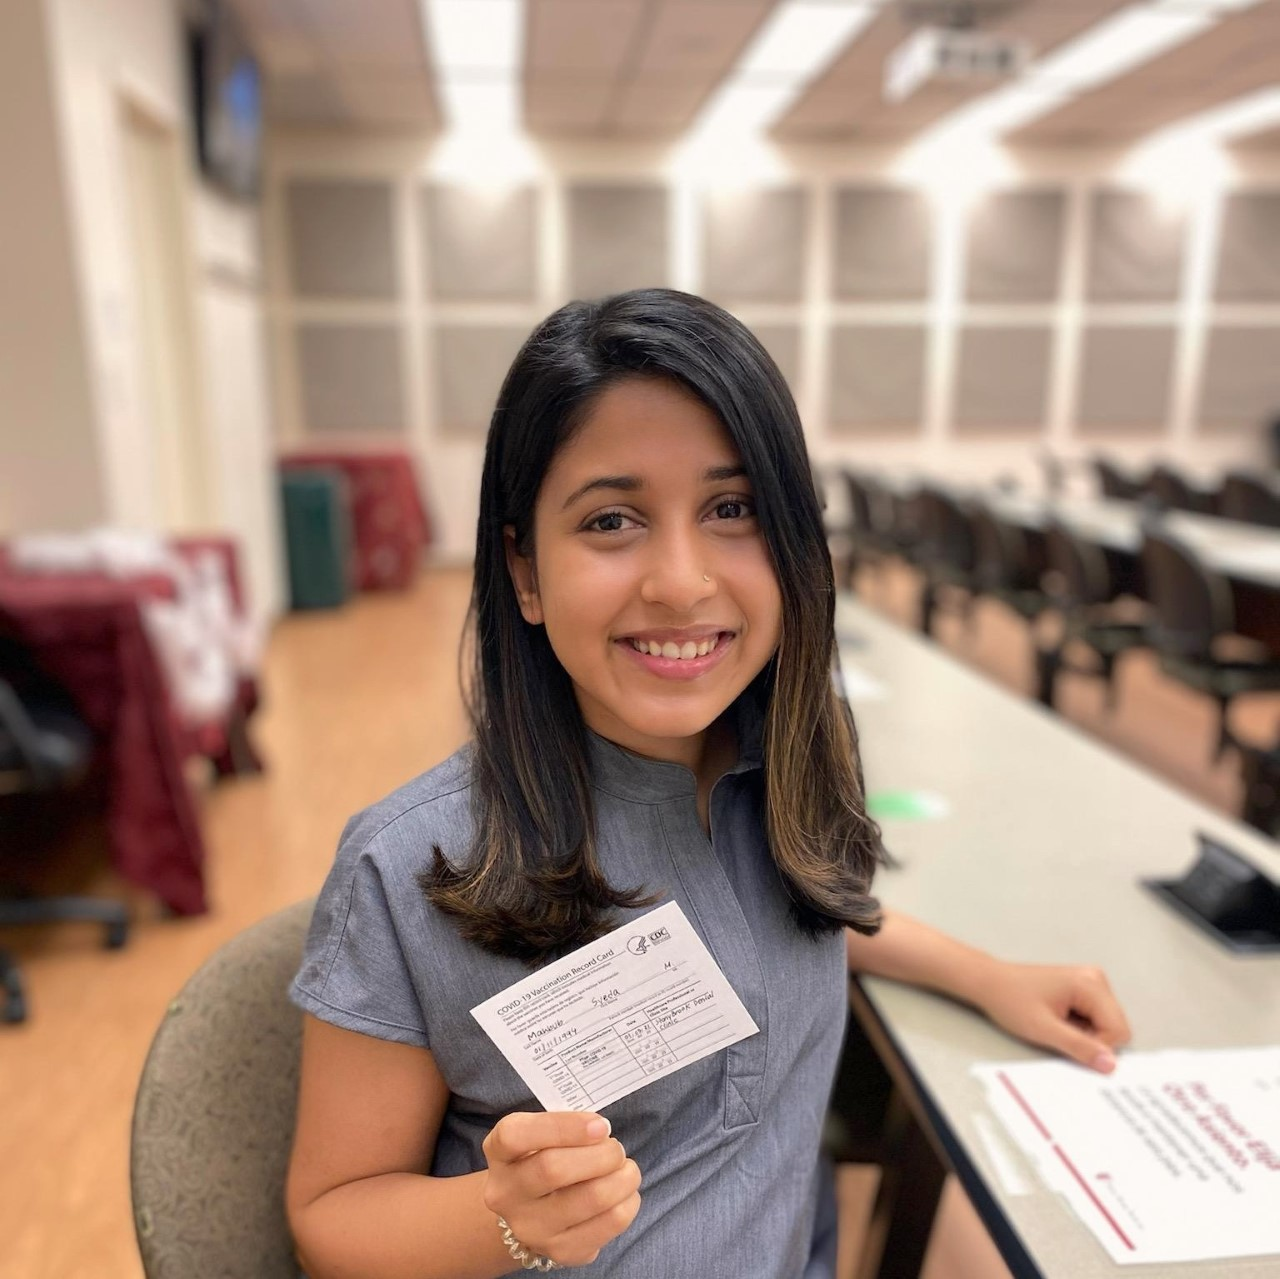 Stony Brook School of Dental Medicine student displays proof of vaccine card.